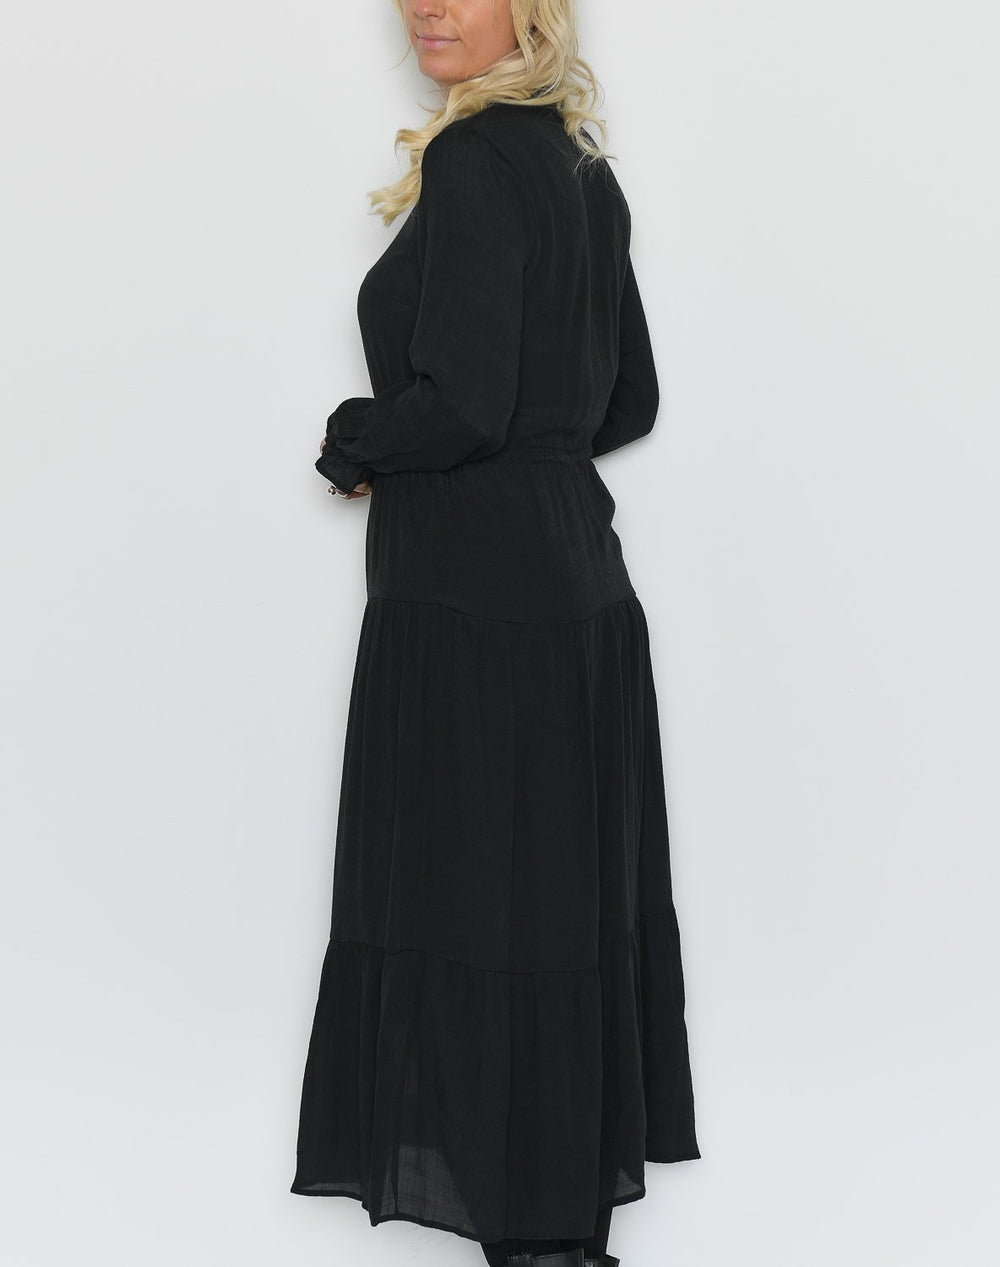 Luxzuz Geraldine dress black - Online-Mode